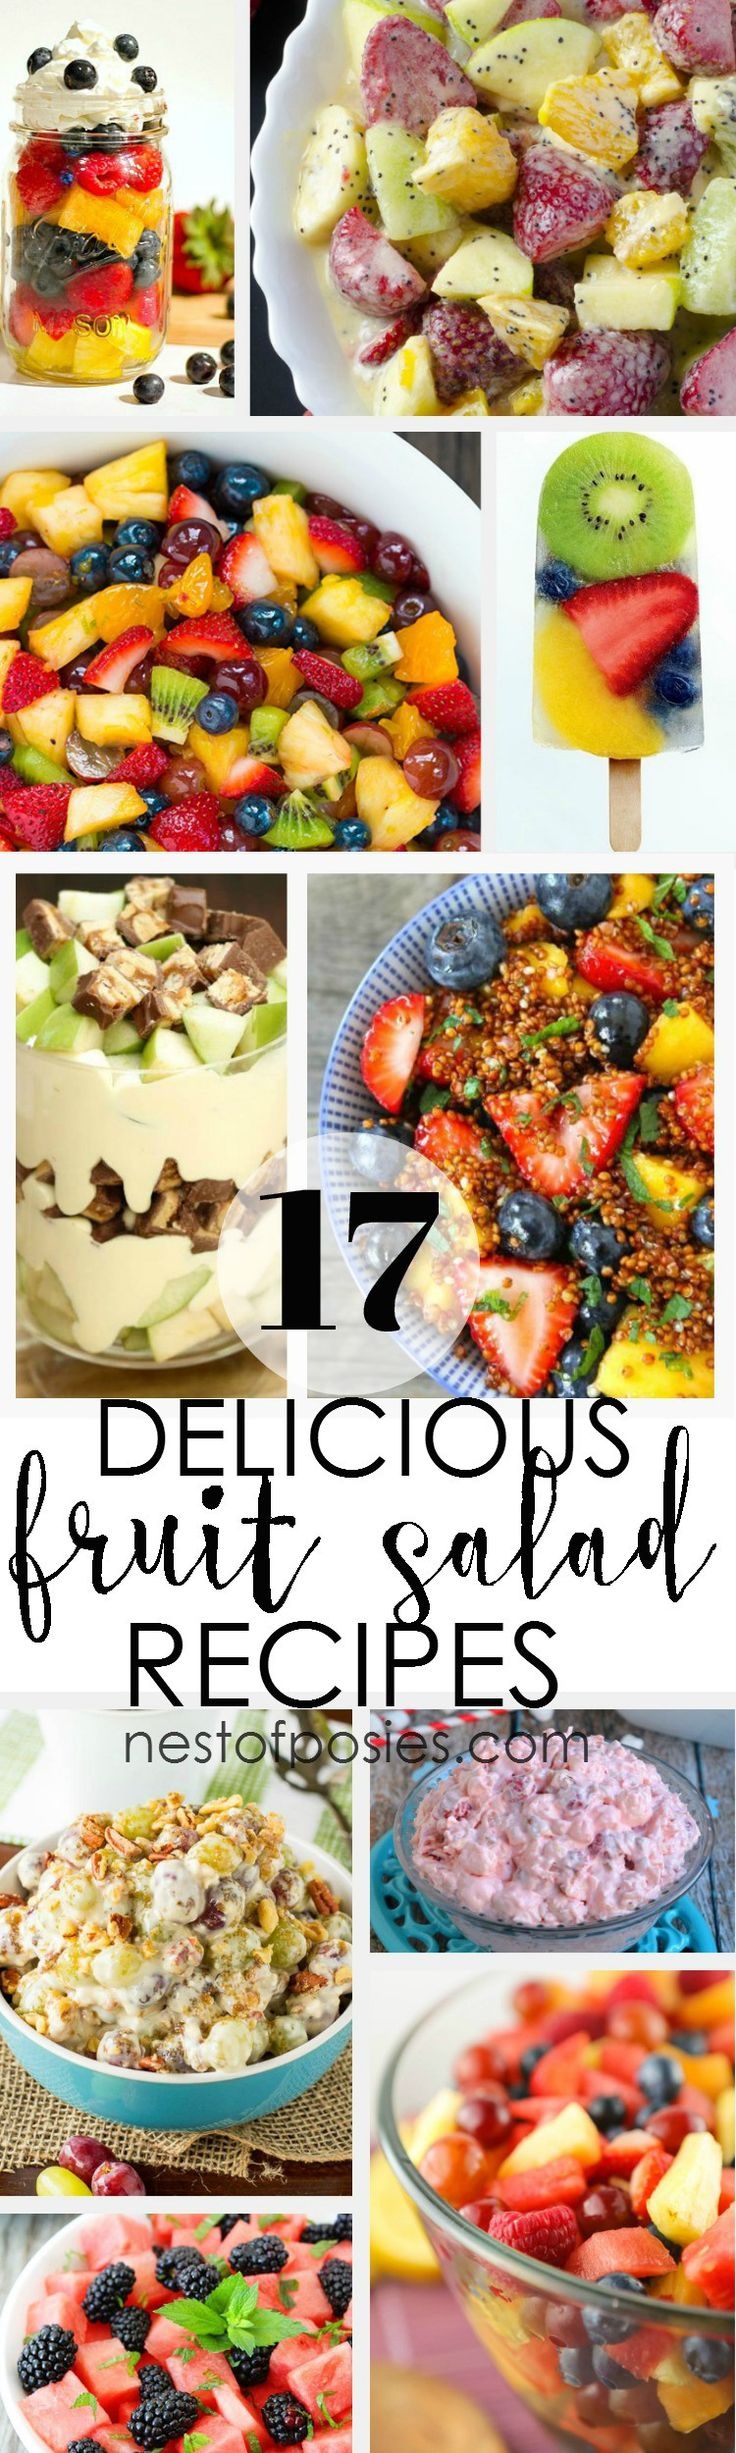 17 Delicious & Refreshing Fruit Salad Recipes